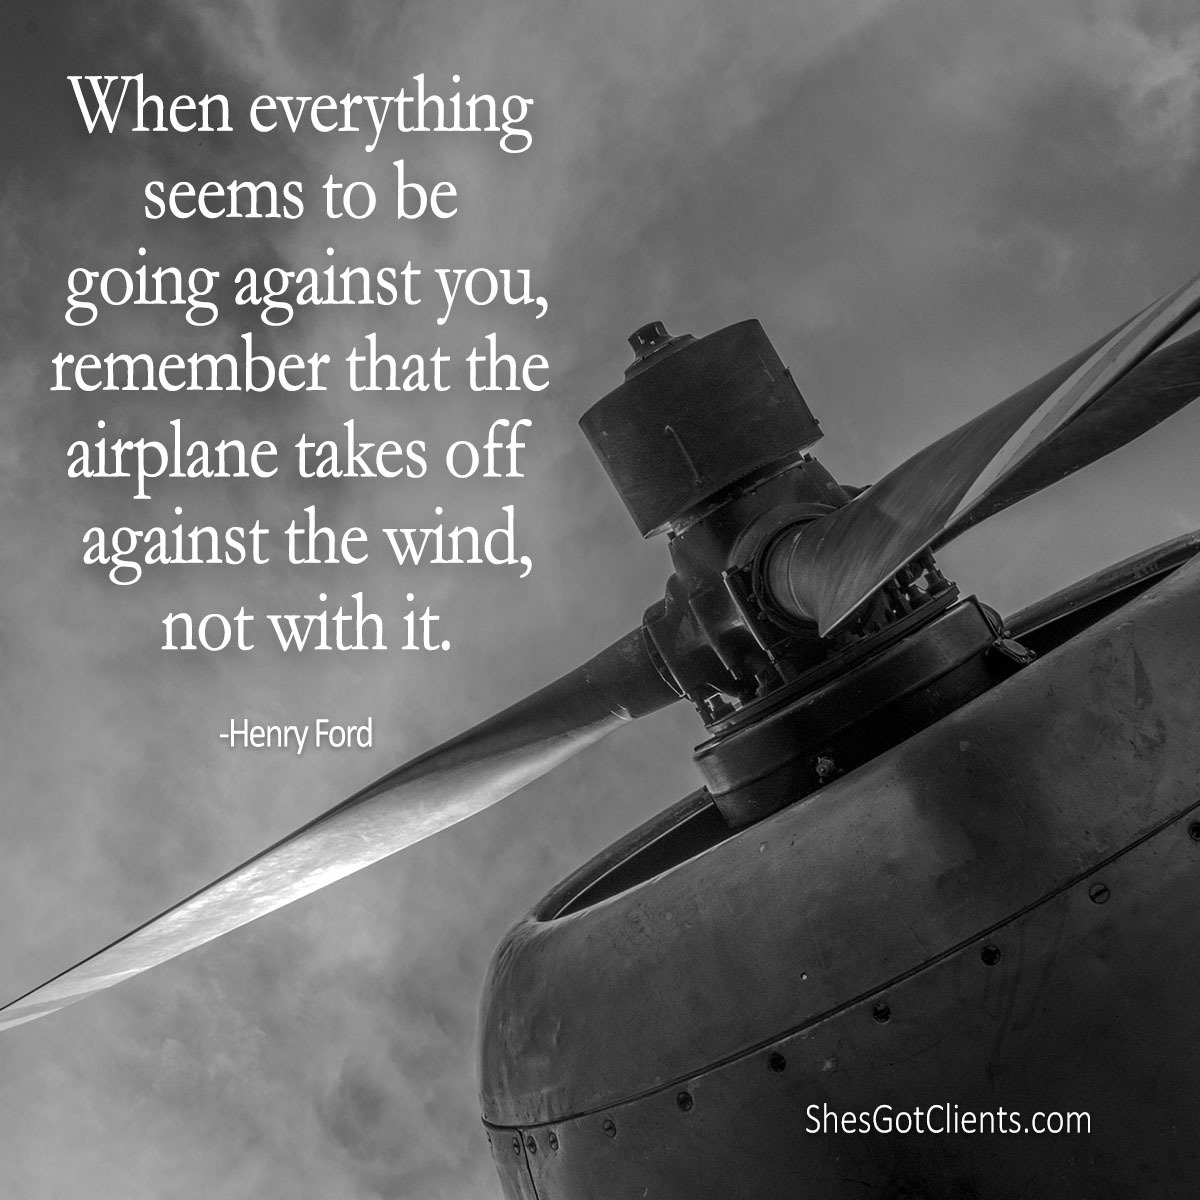 When everything seems to be going against you, remember that the airplane takes off against the wind, not with it. https://t.co/d6UYQsuAQl